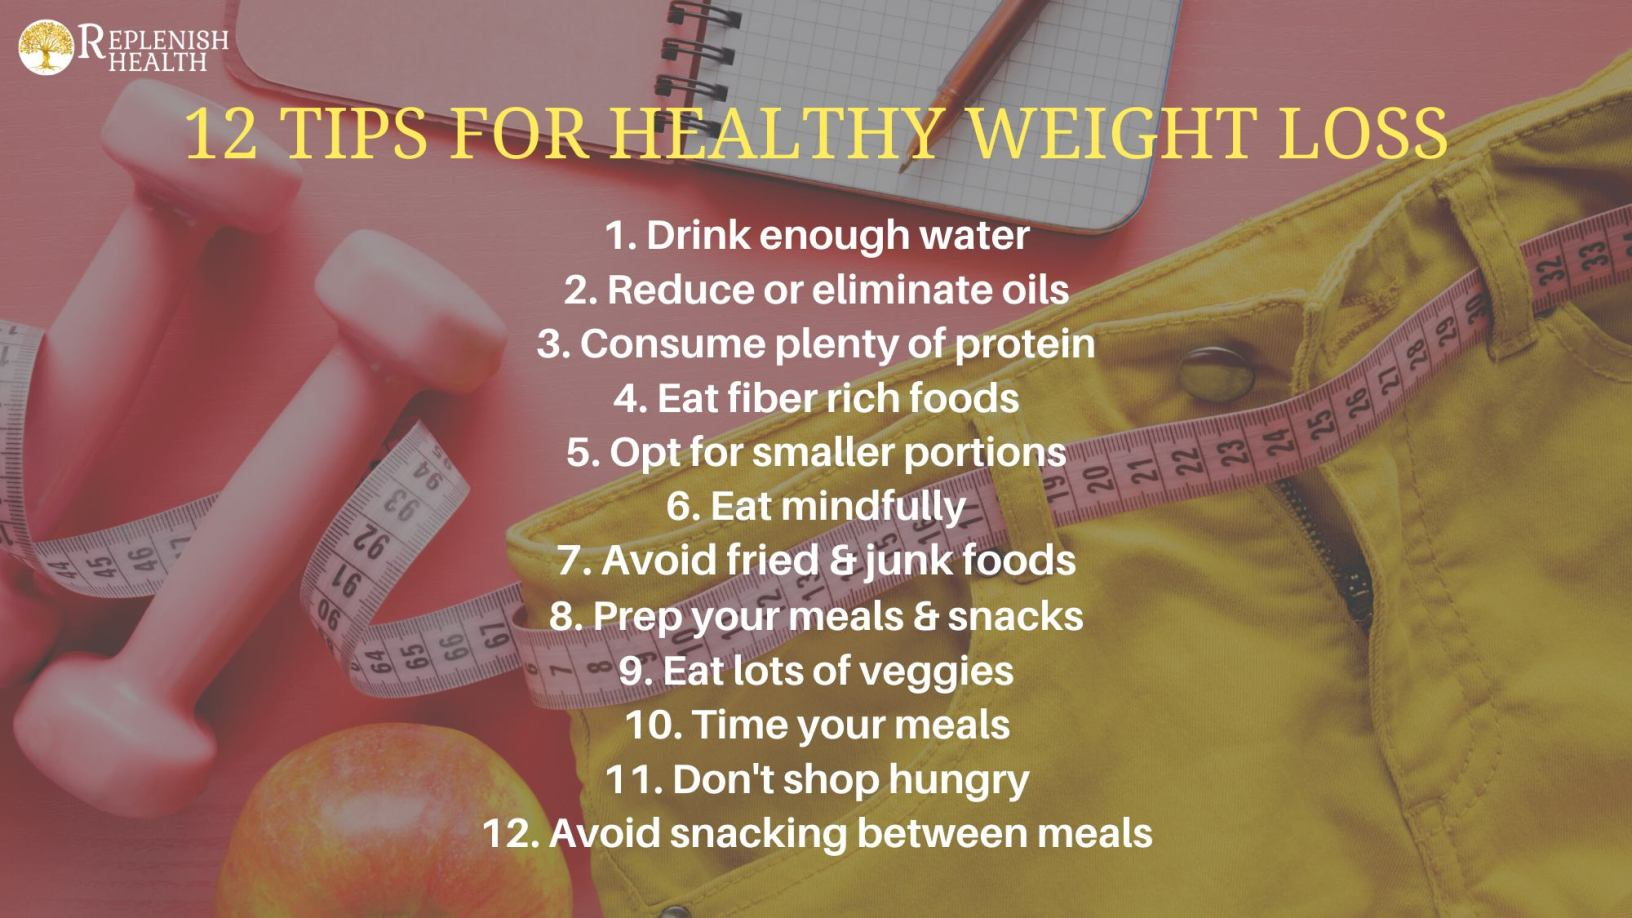 An image of 12 Tips For Healthy Weight Loss